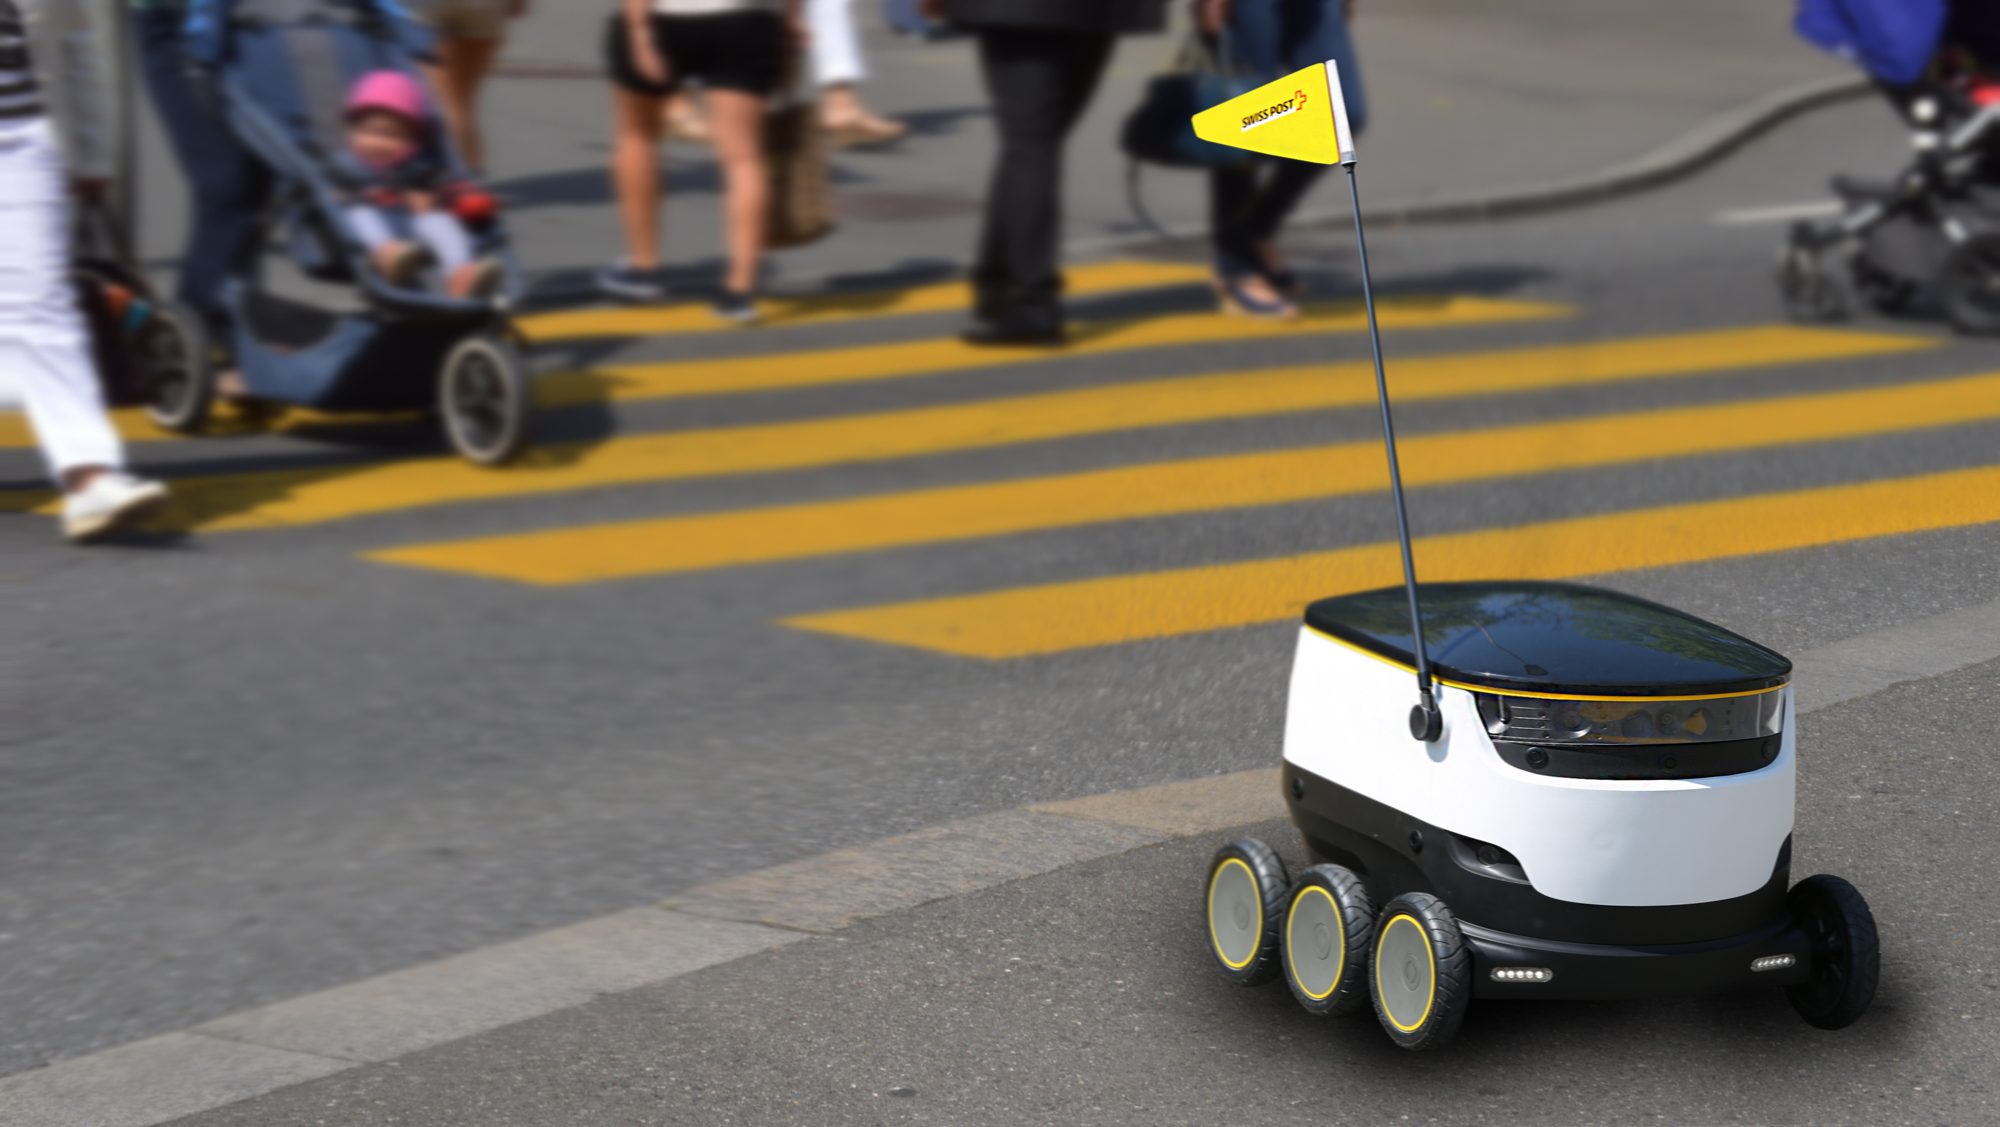 Delivery robot by Swiss Post